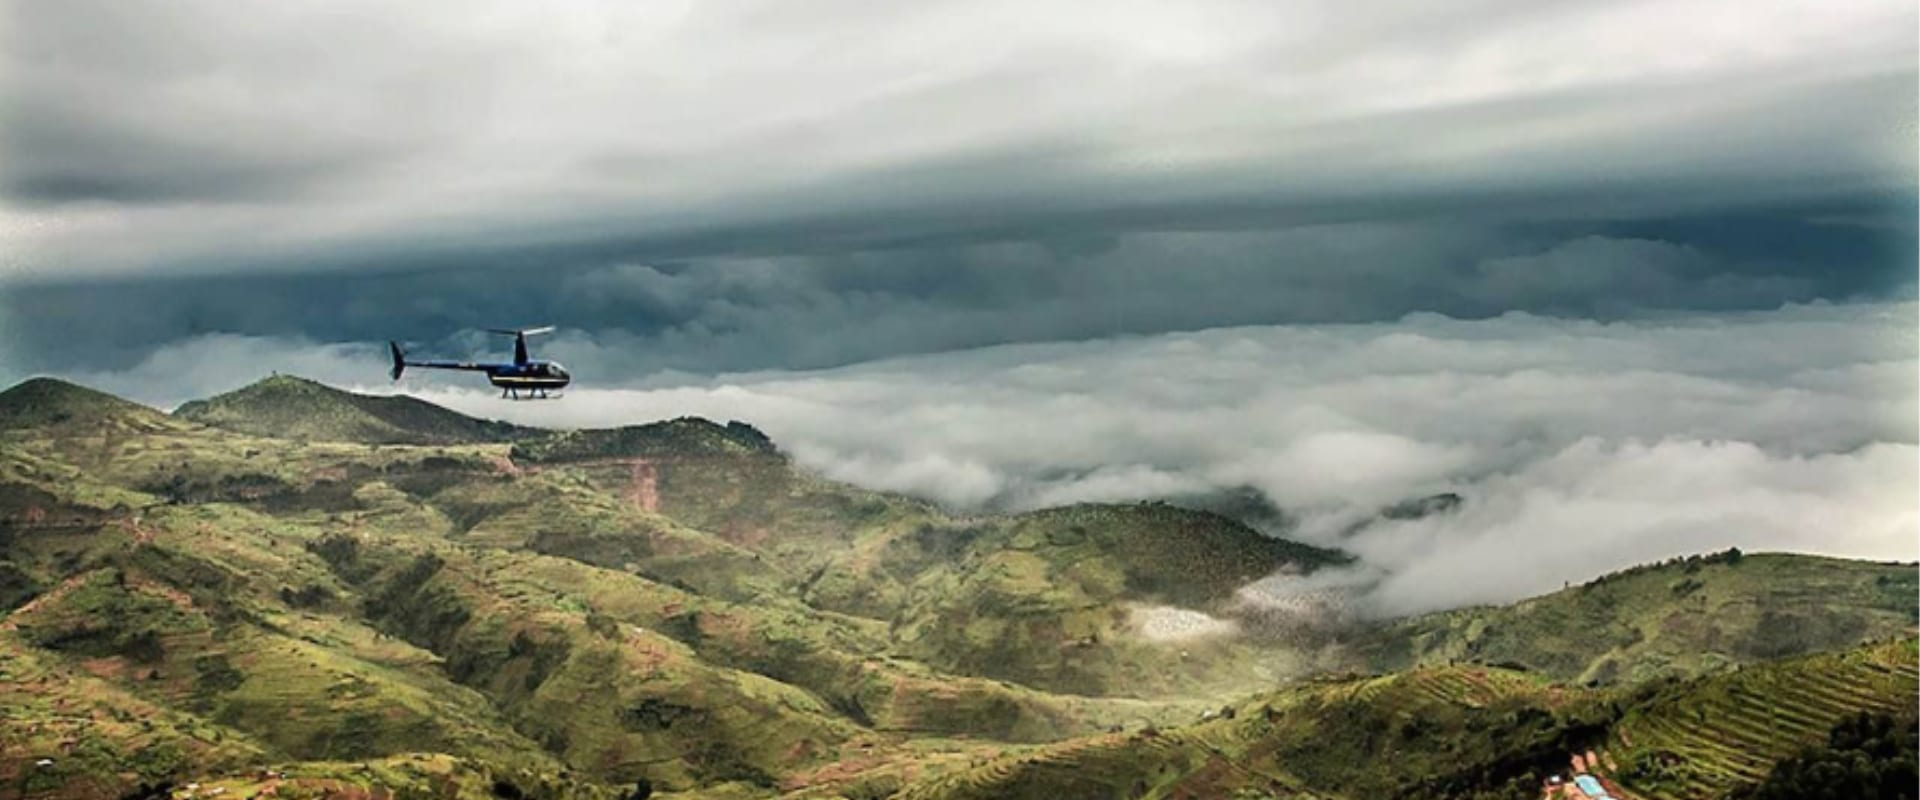 Enjoy the game rich Kenyan highlands from a helicopter